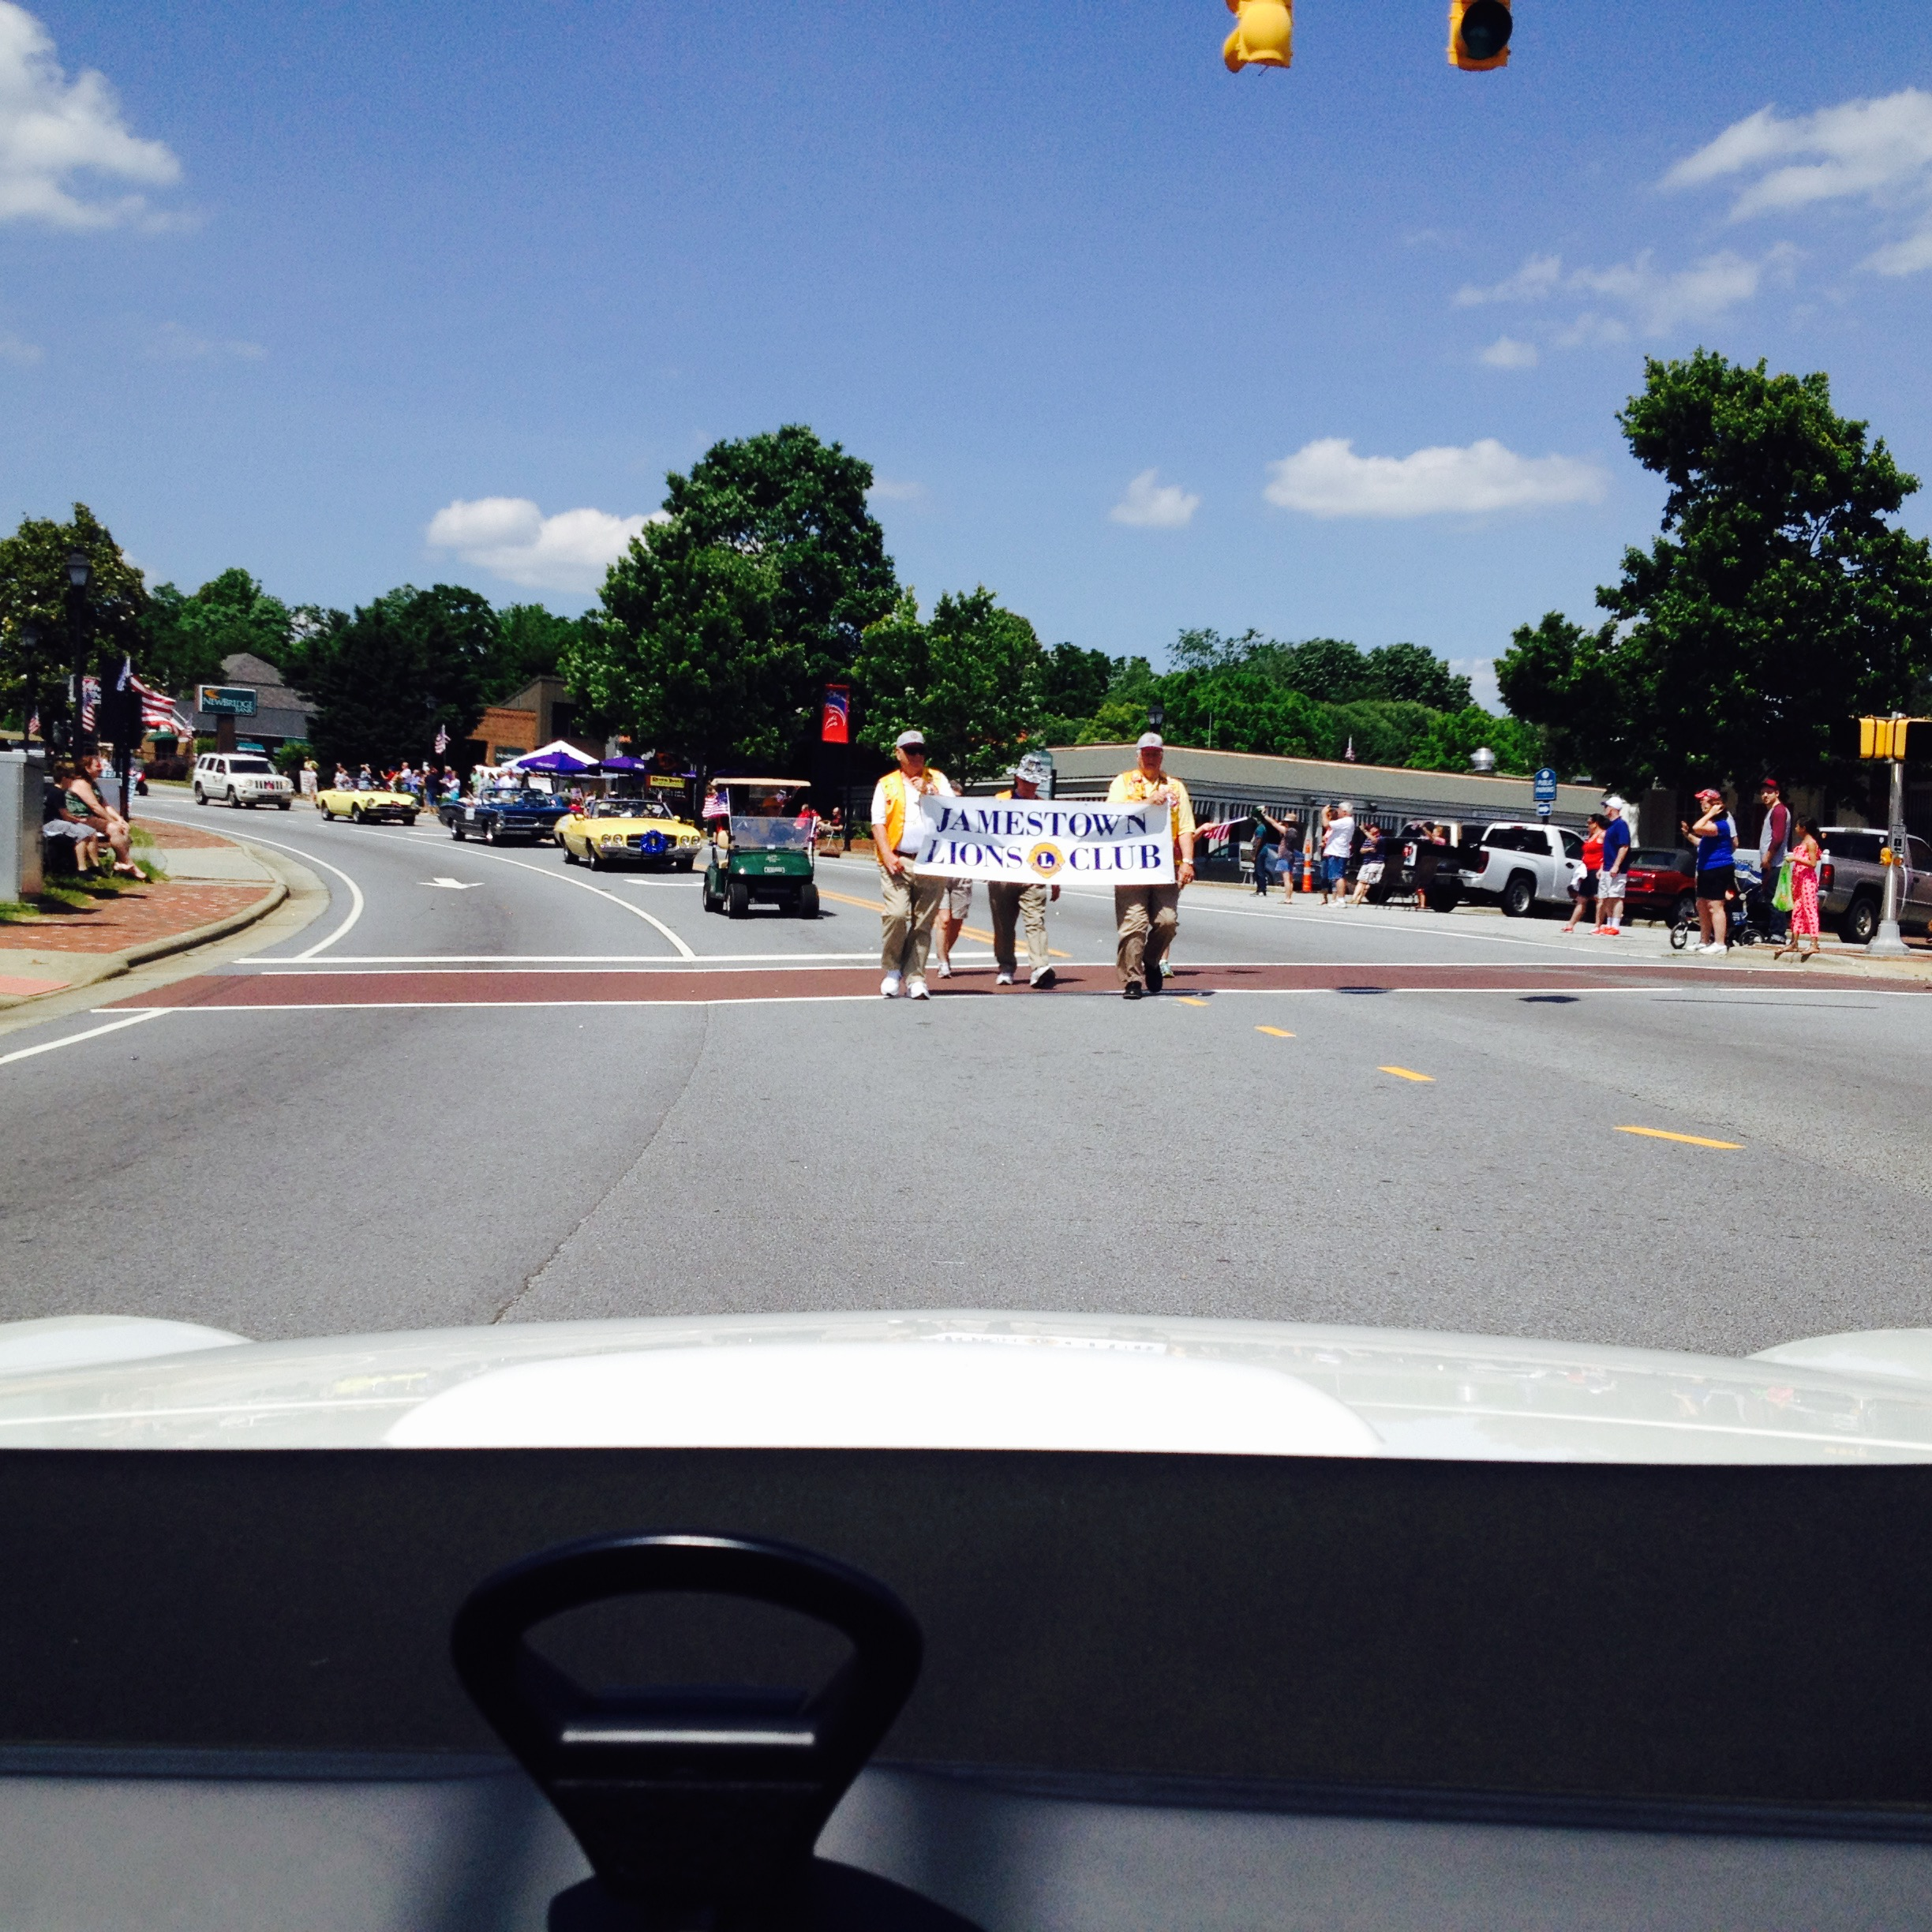 At the Jamestown, N.C. Memorial Day Parade 2015